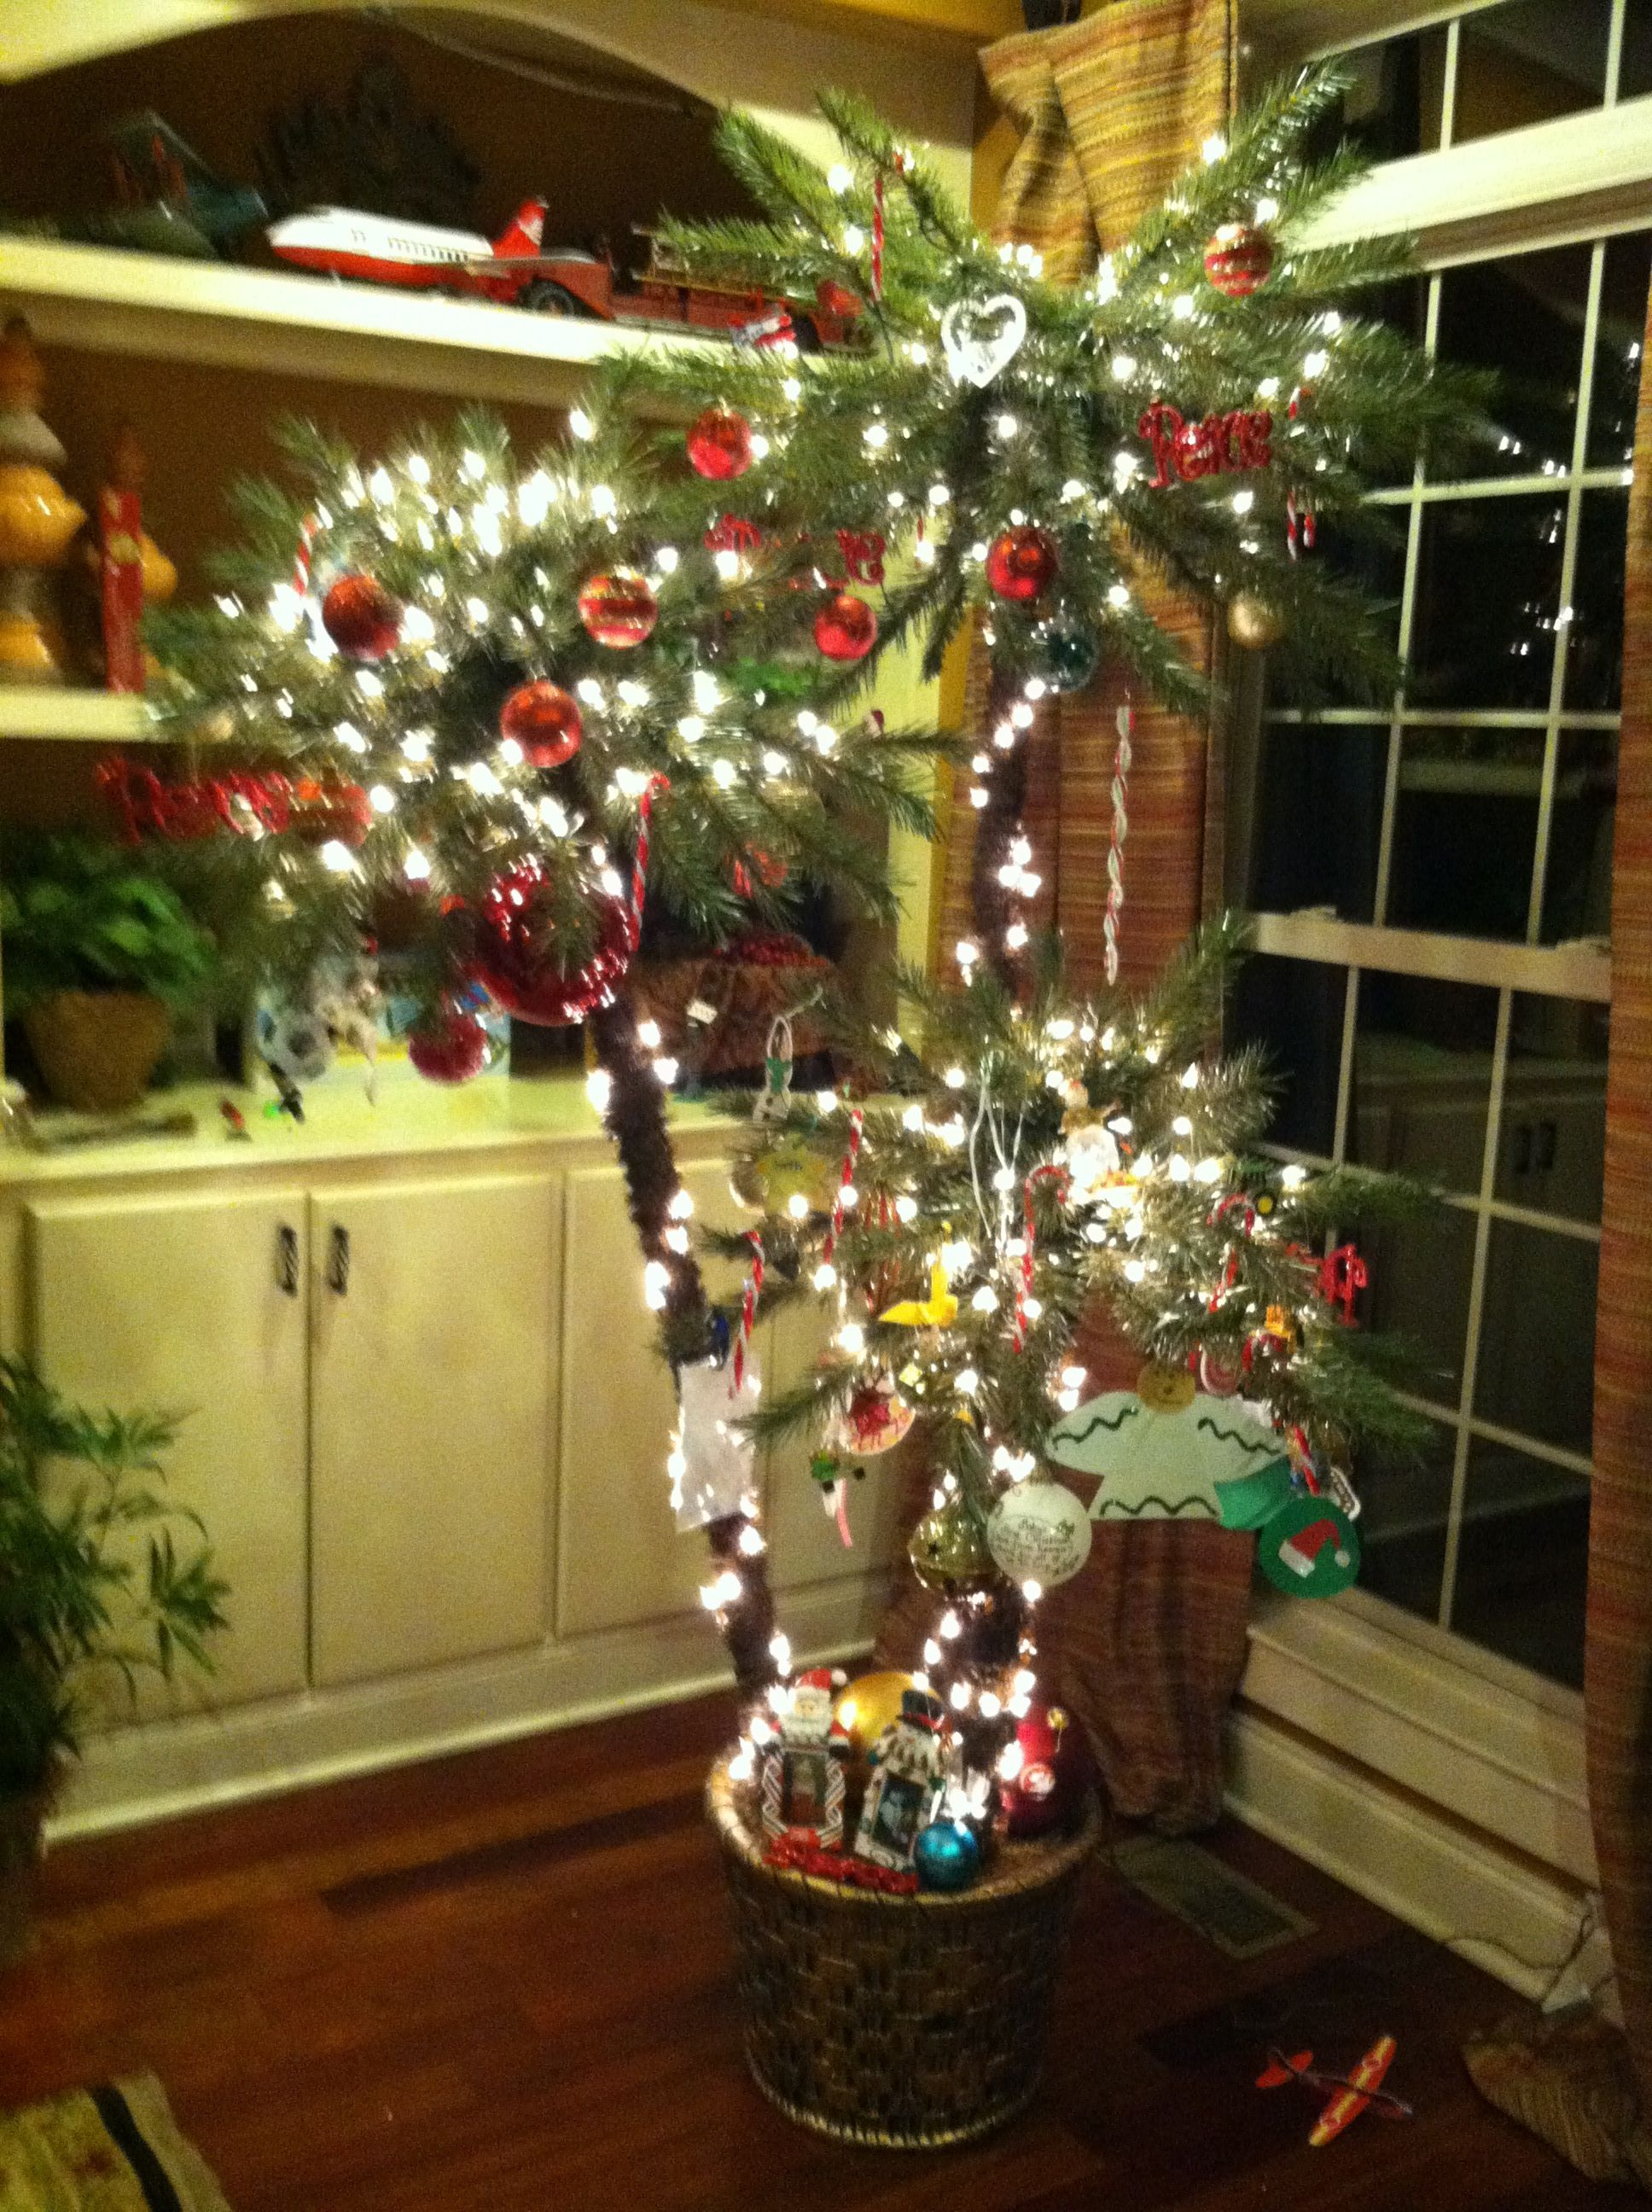 You might be a Jimmy Buffet fan if you have a palm tree instead of a Christmas tree.